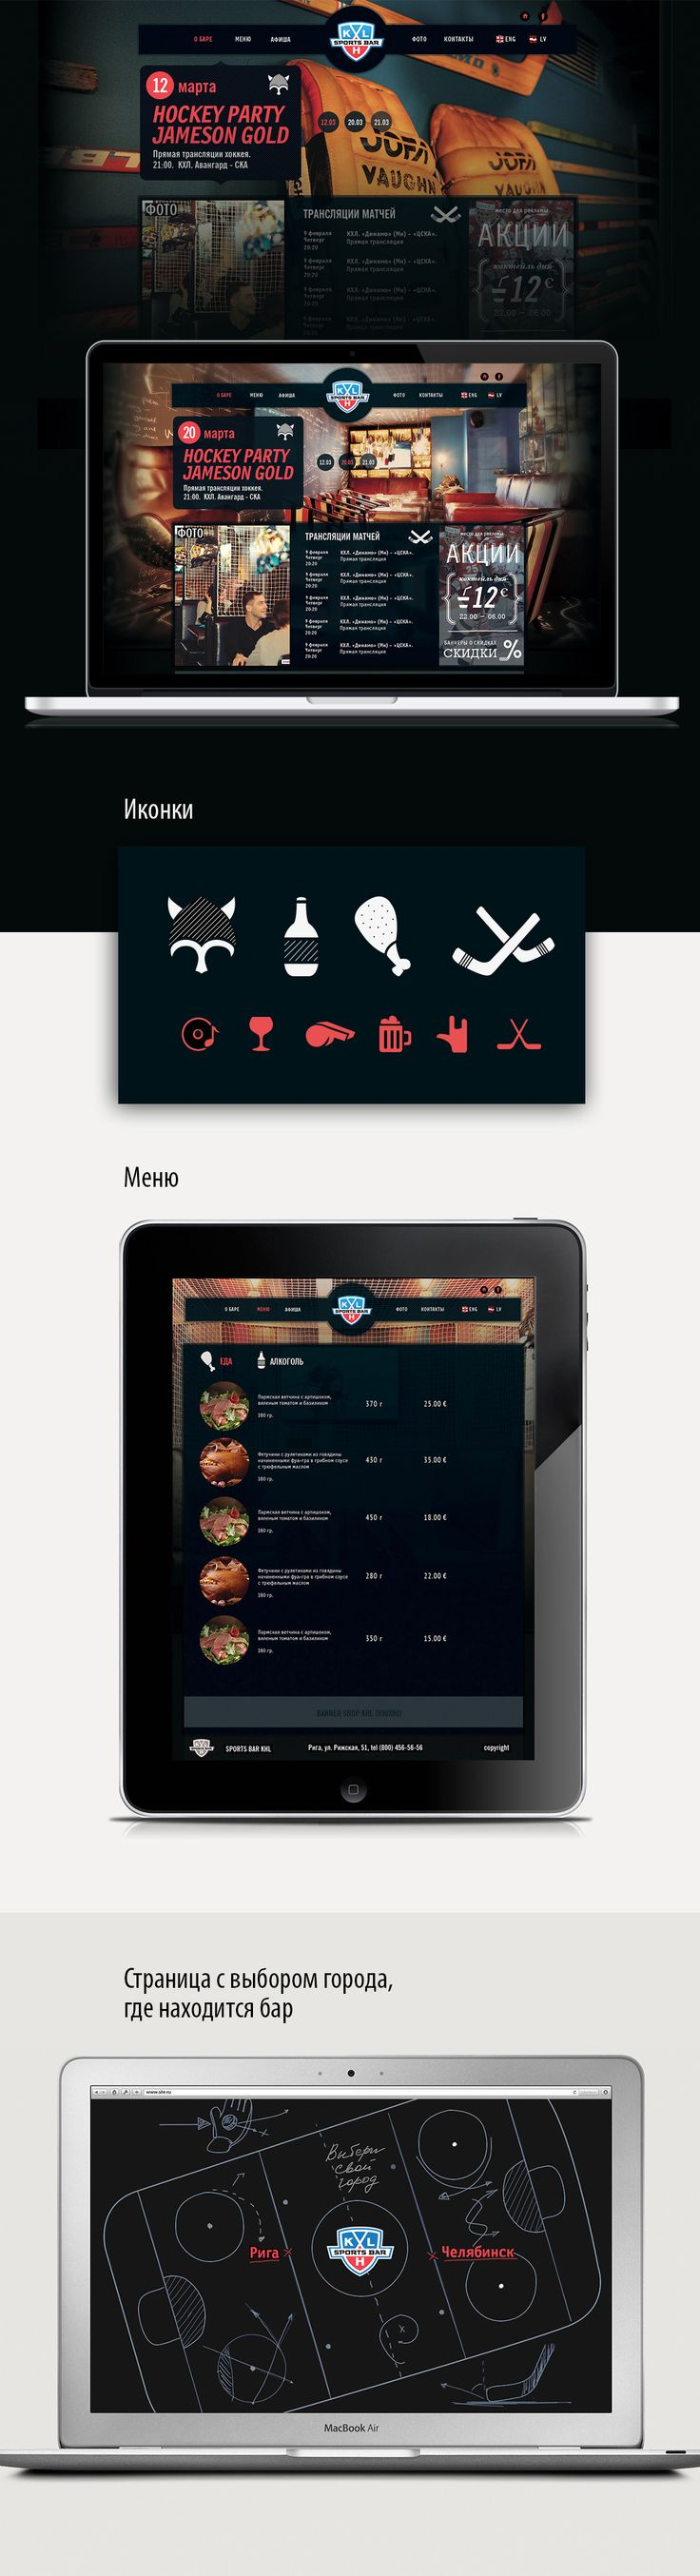 web design for a sports bar the KHL (Continental Hockey League)